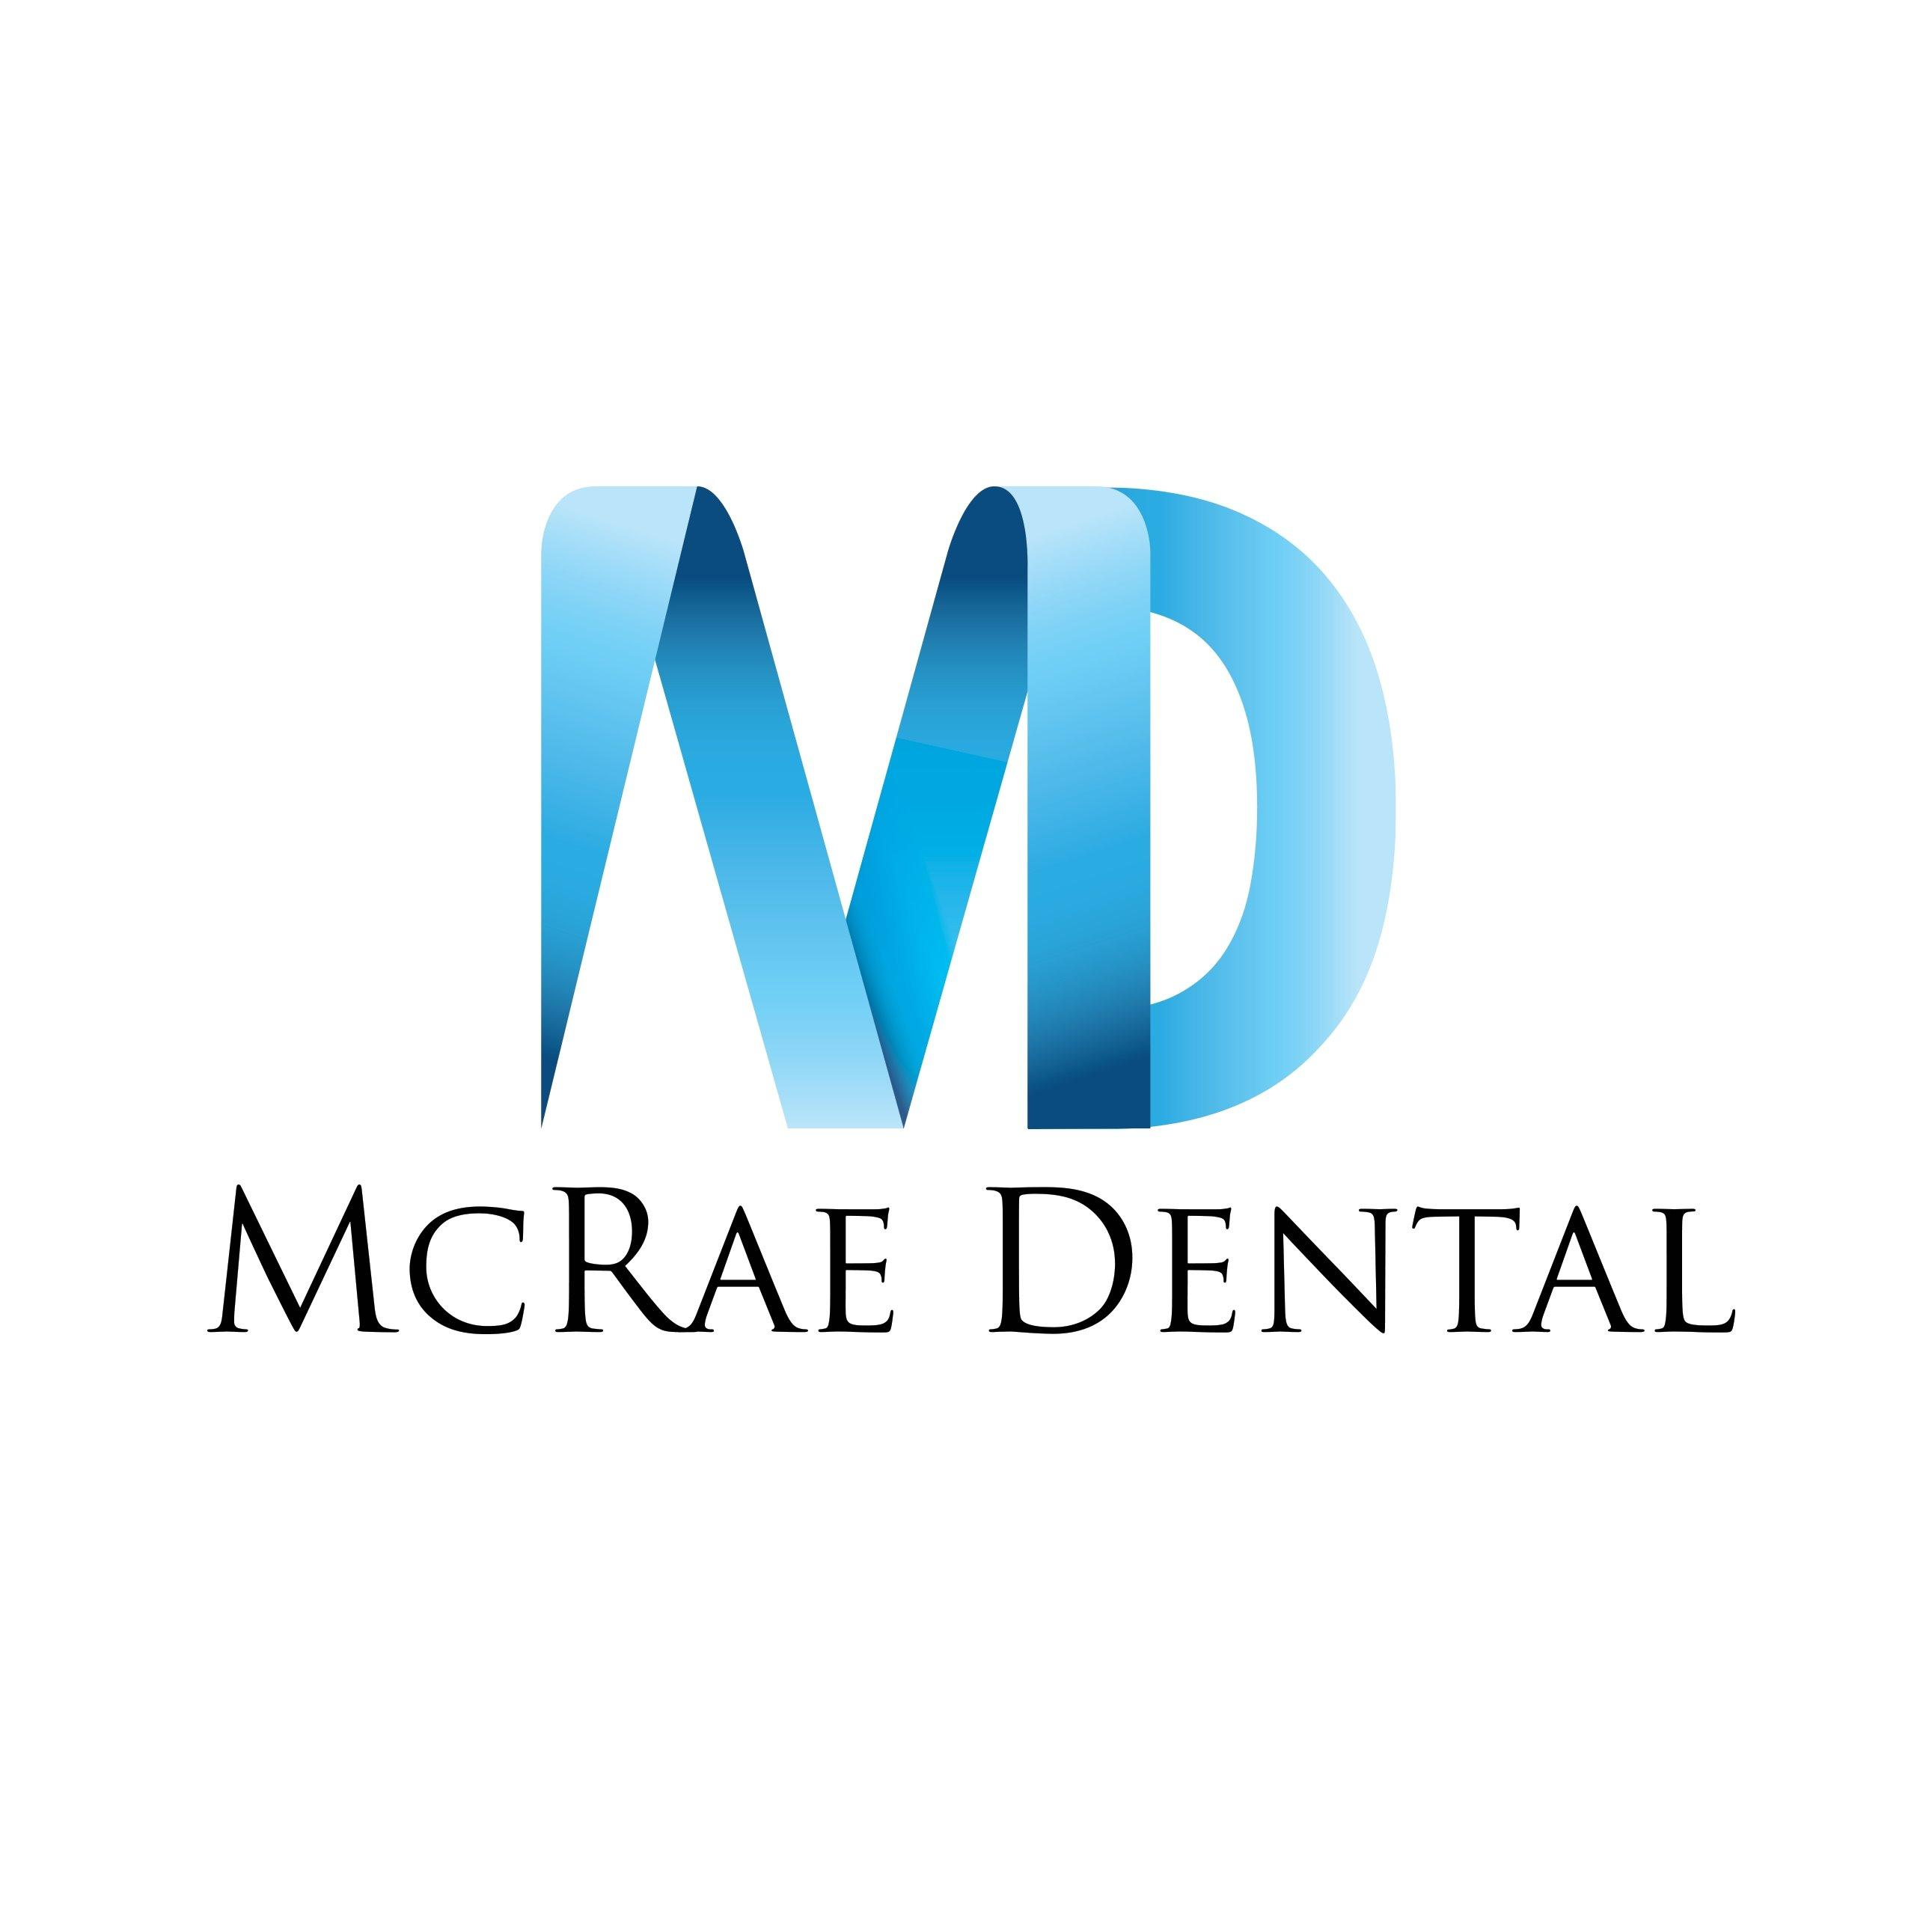 McRae Dental image 5